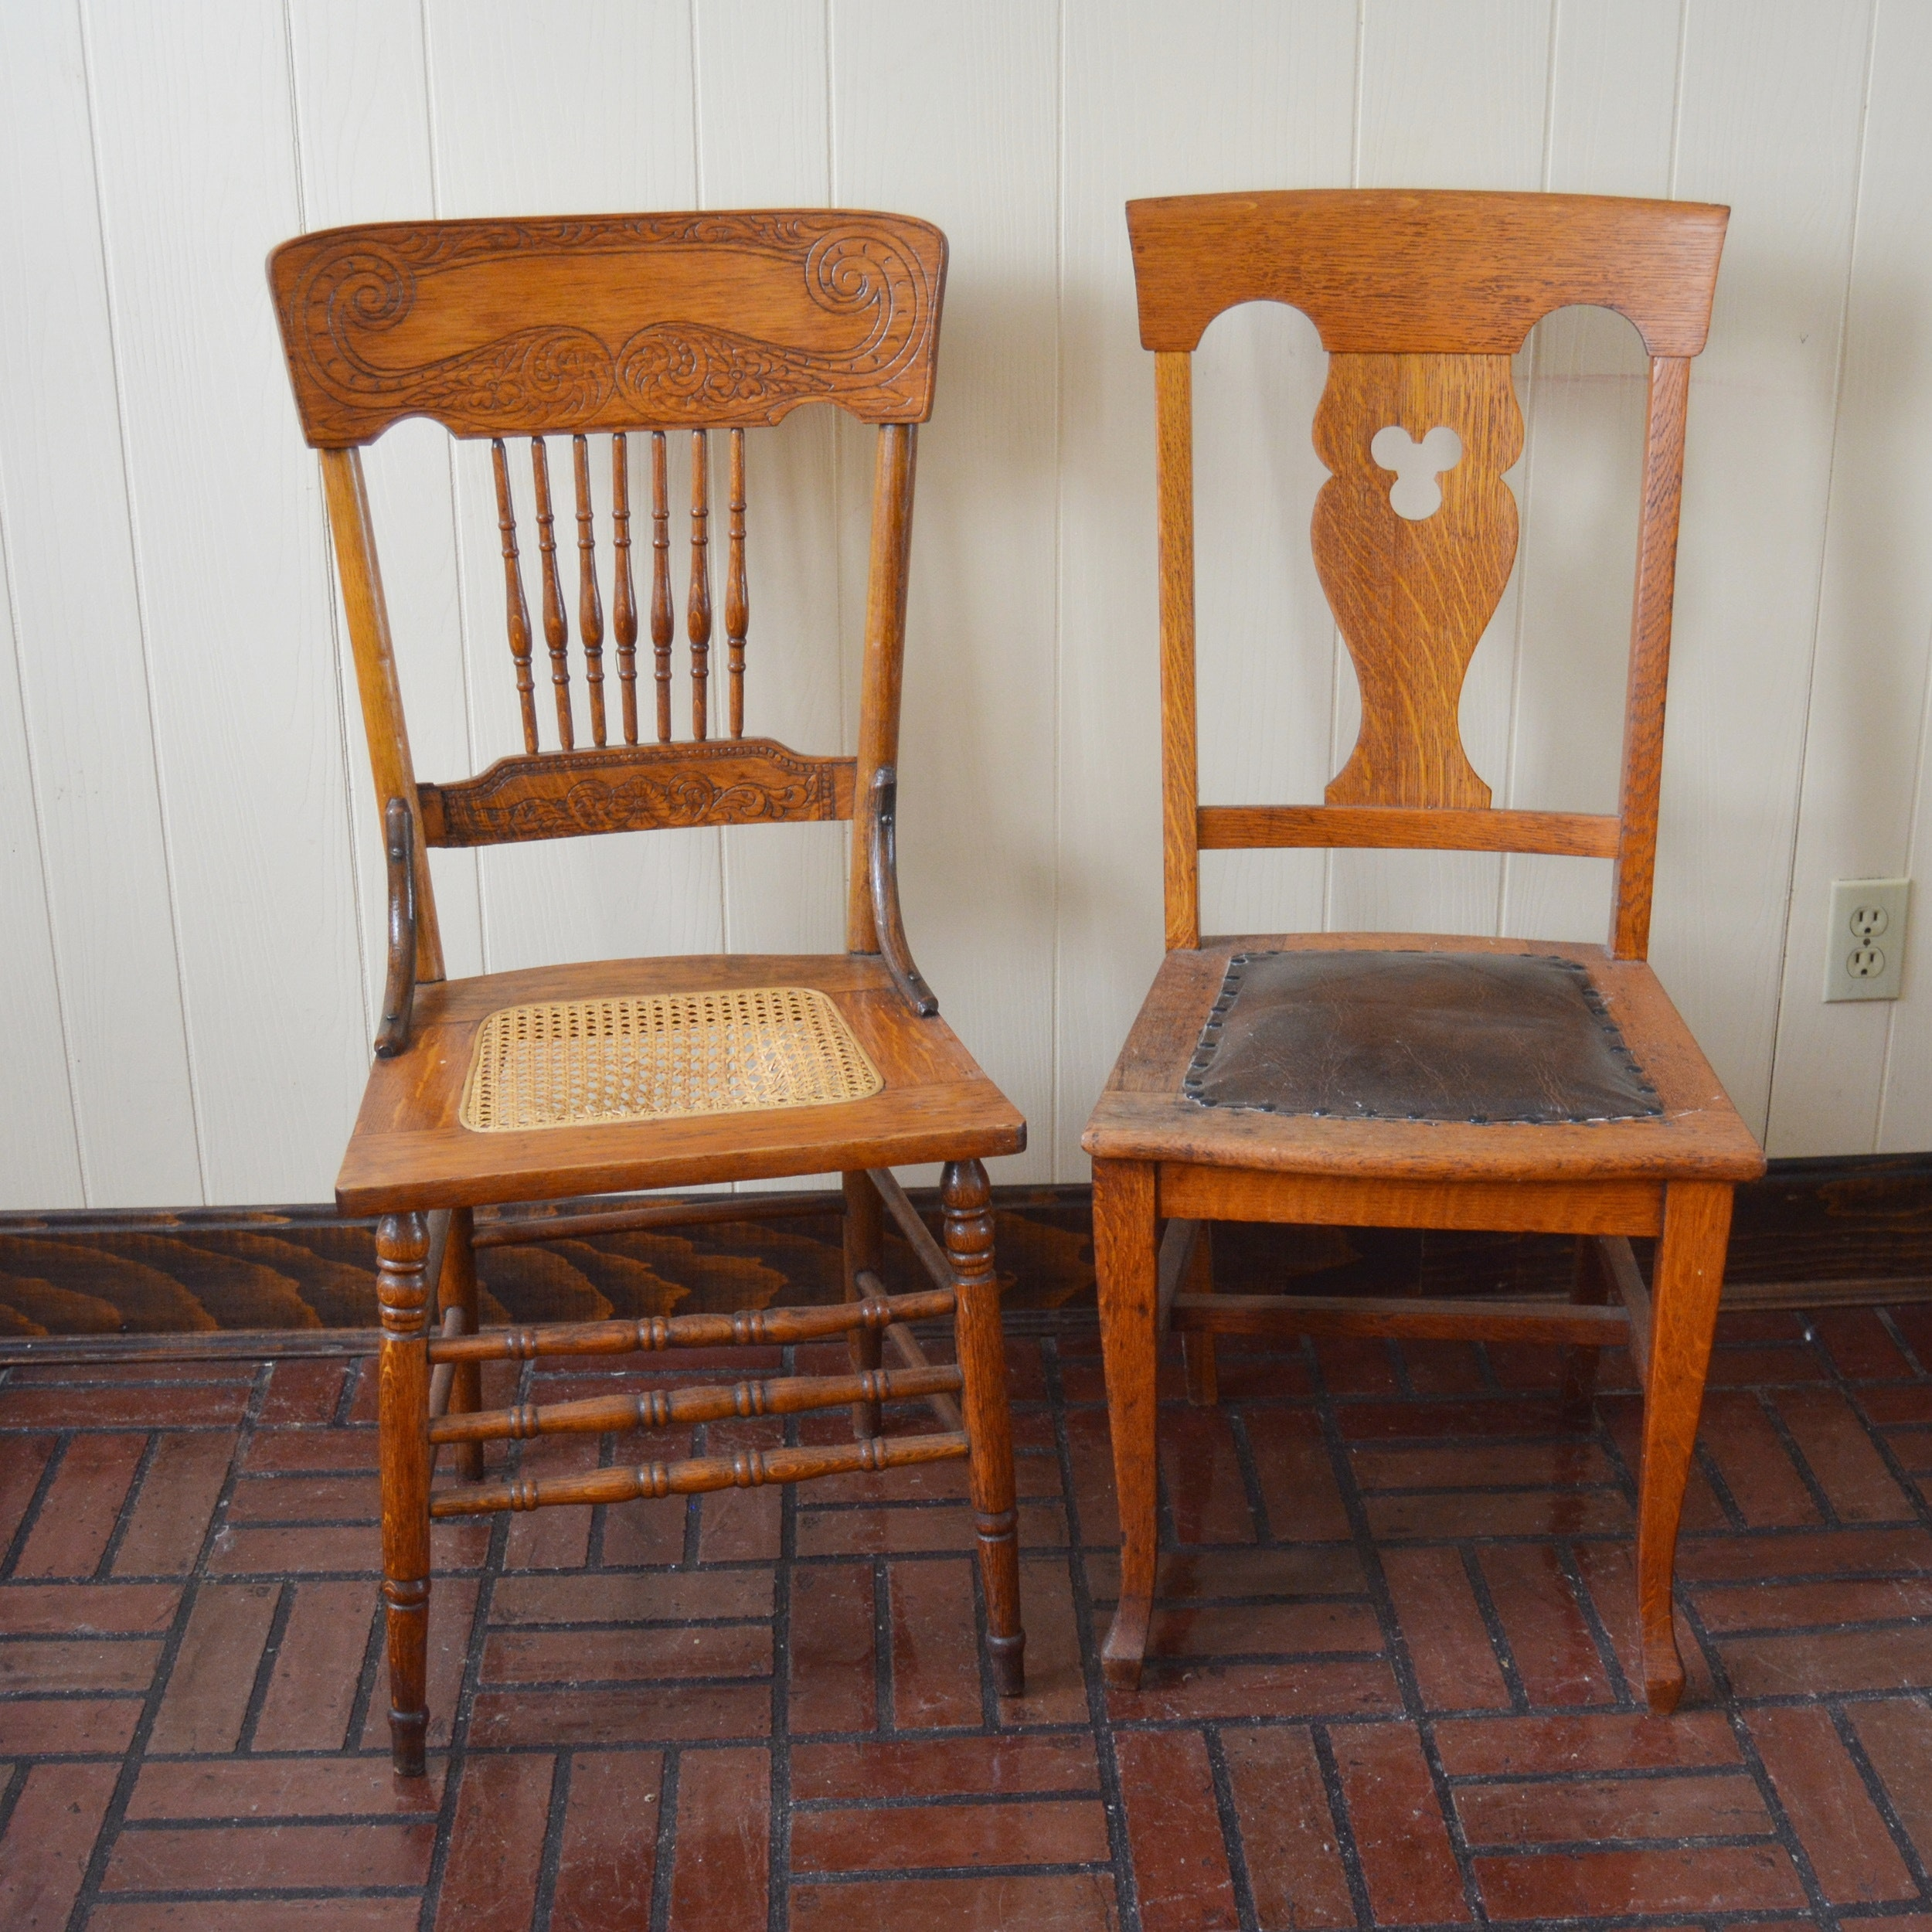 Two Vintage Wood Chairs